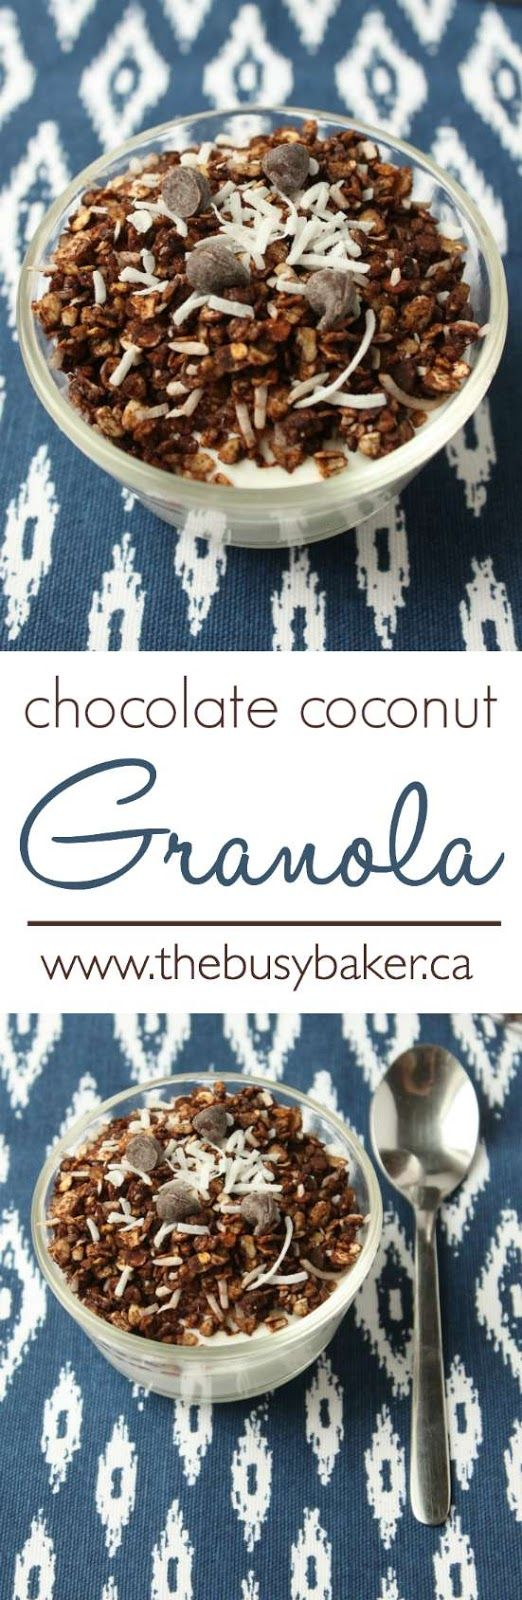 Chocolate Coconut Granola Recipe by www.thebusybaker.ca. Perfect for Valentine's Day breakfast!